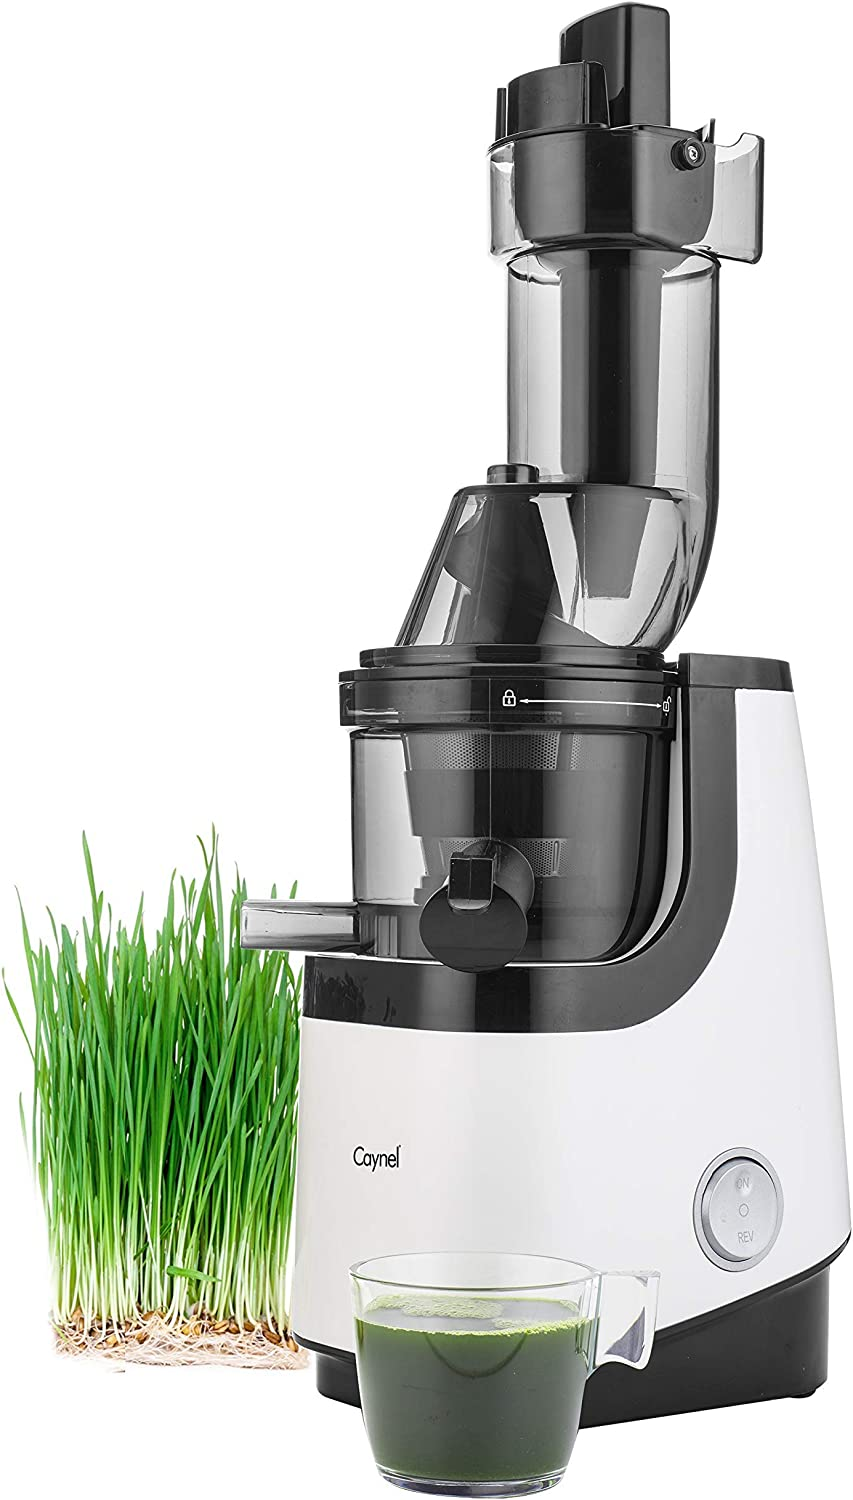 Caynel Whole Slow Juicer, Masticating Cold Press Juicer Machine Easy to Clean, Higher Nutrients and Vitamins, Eastman Tritan Material BPA-Free, Ultra Efficient 200W, 50RPMs, Ceramic (White)